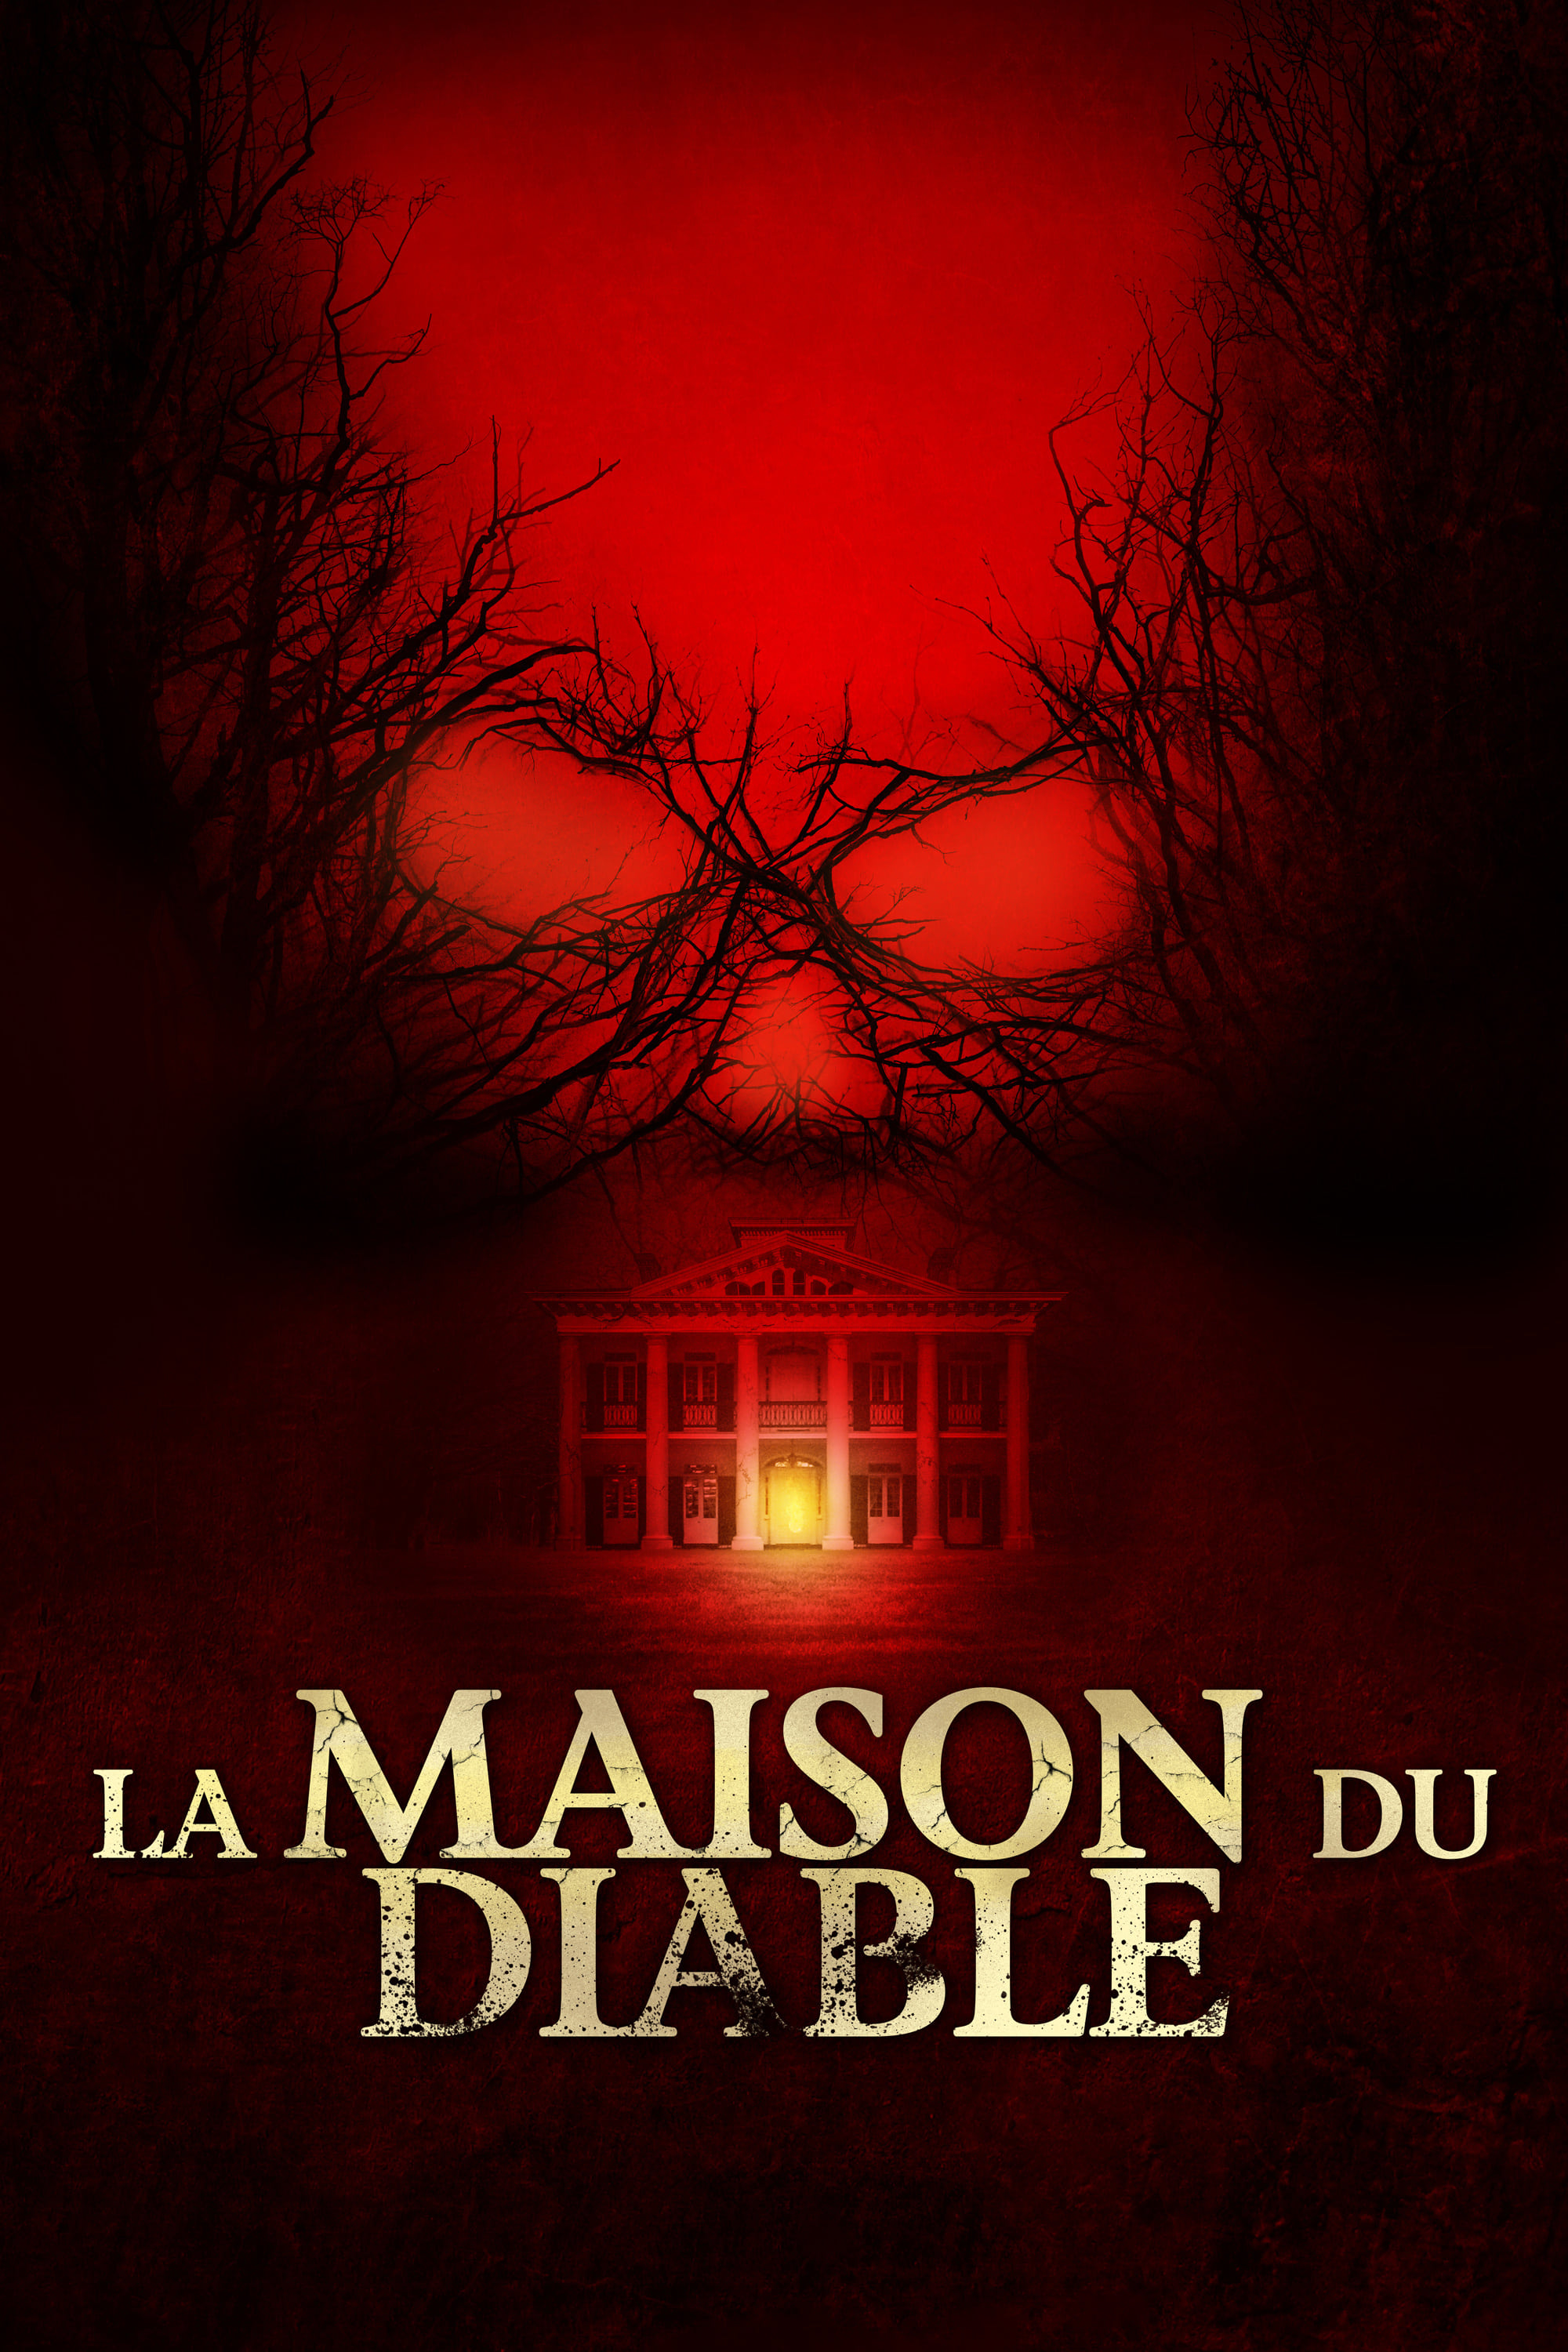 Film la maison du diable 2009 en streaming vf complet for Amityville la maison du diable streaming vf